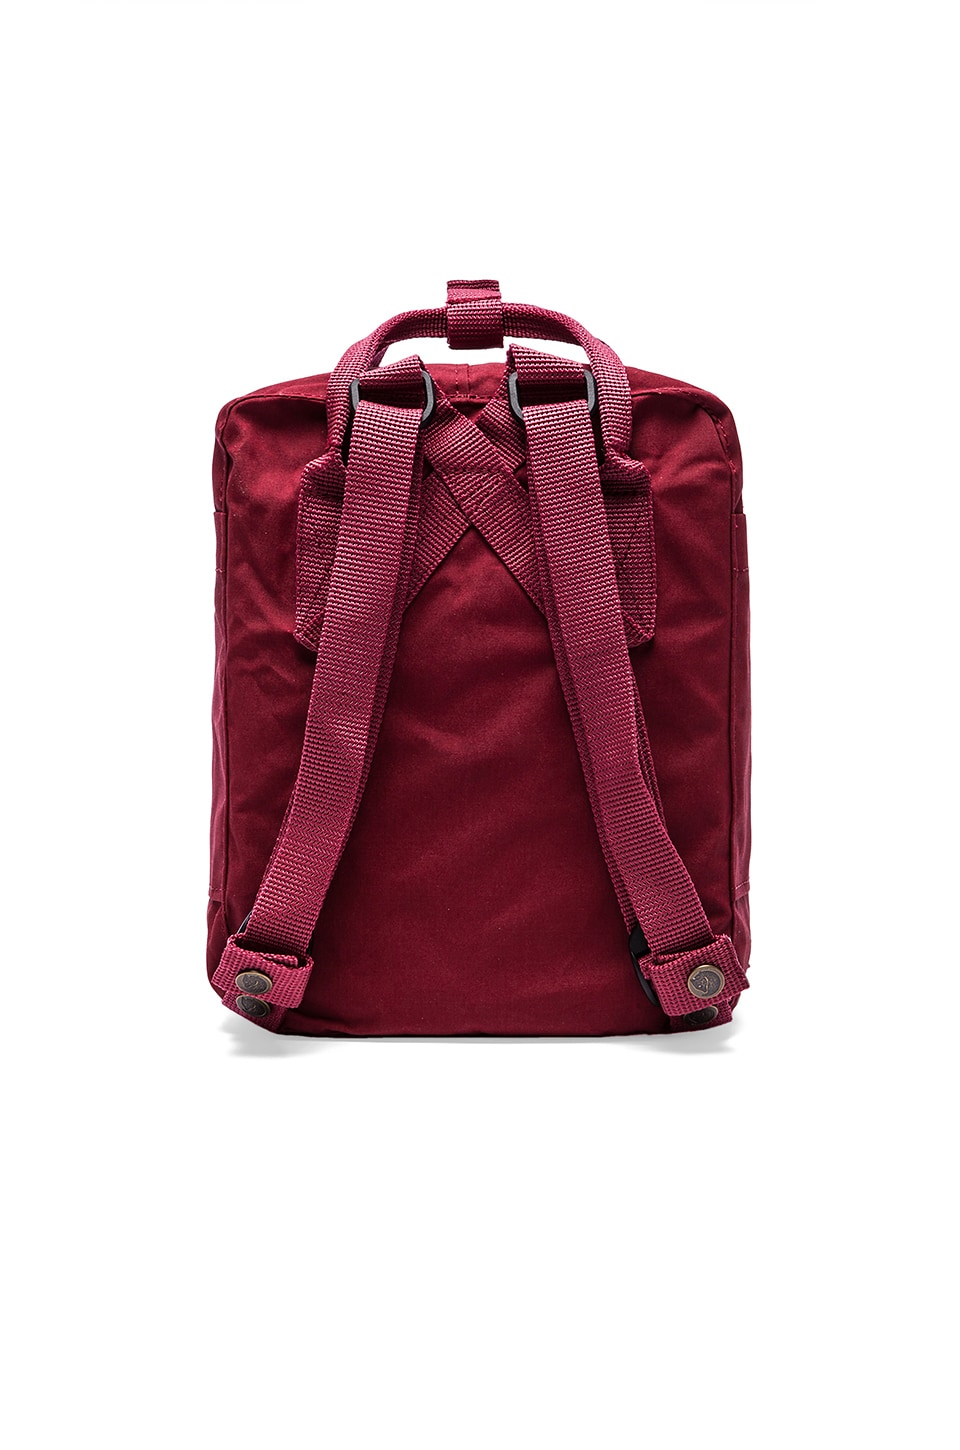 Fjallraven Kanken in Ox Red